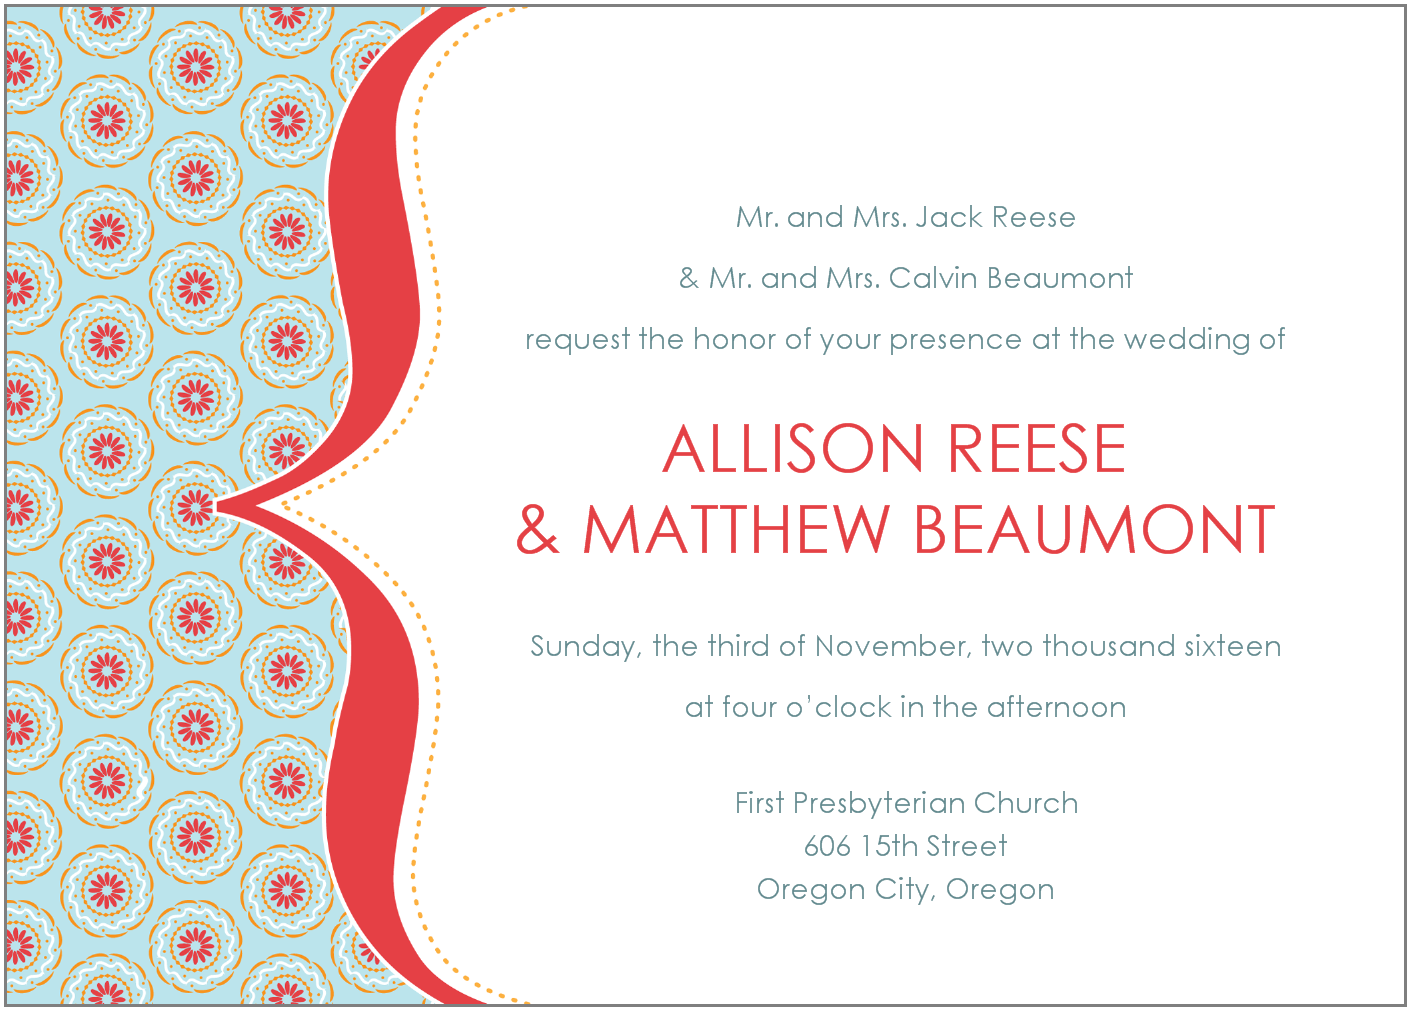 Casual Wedding Invitation Wording.Casual Wedding Invitation Wording Casual Wedding Invitation Wording